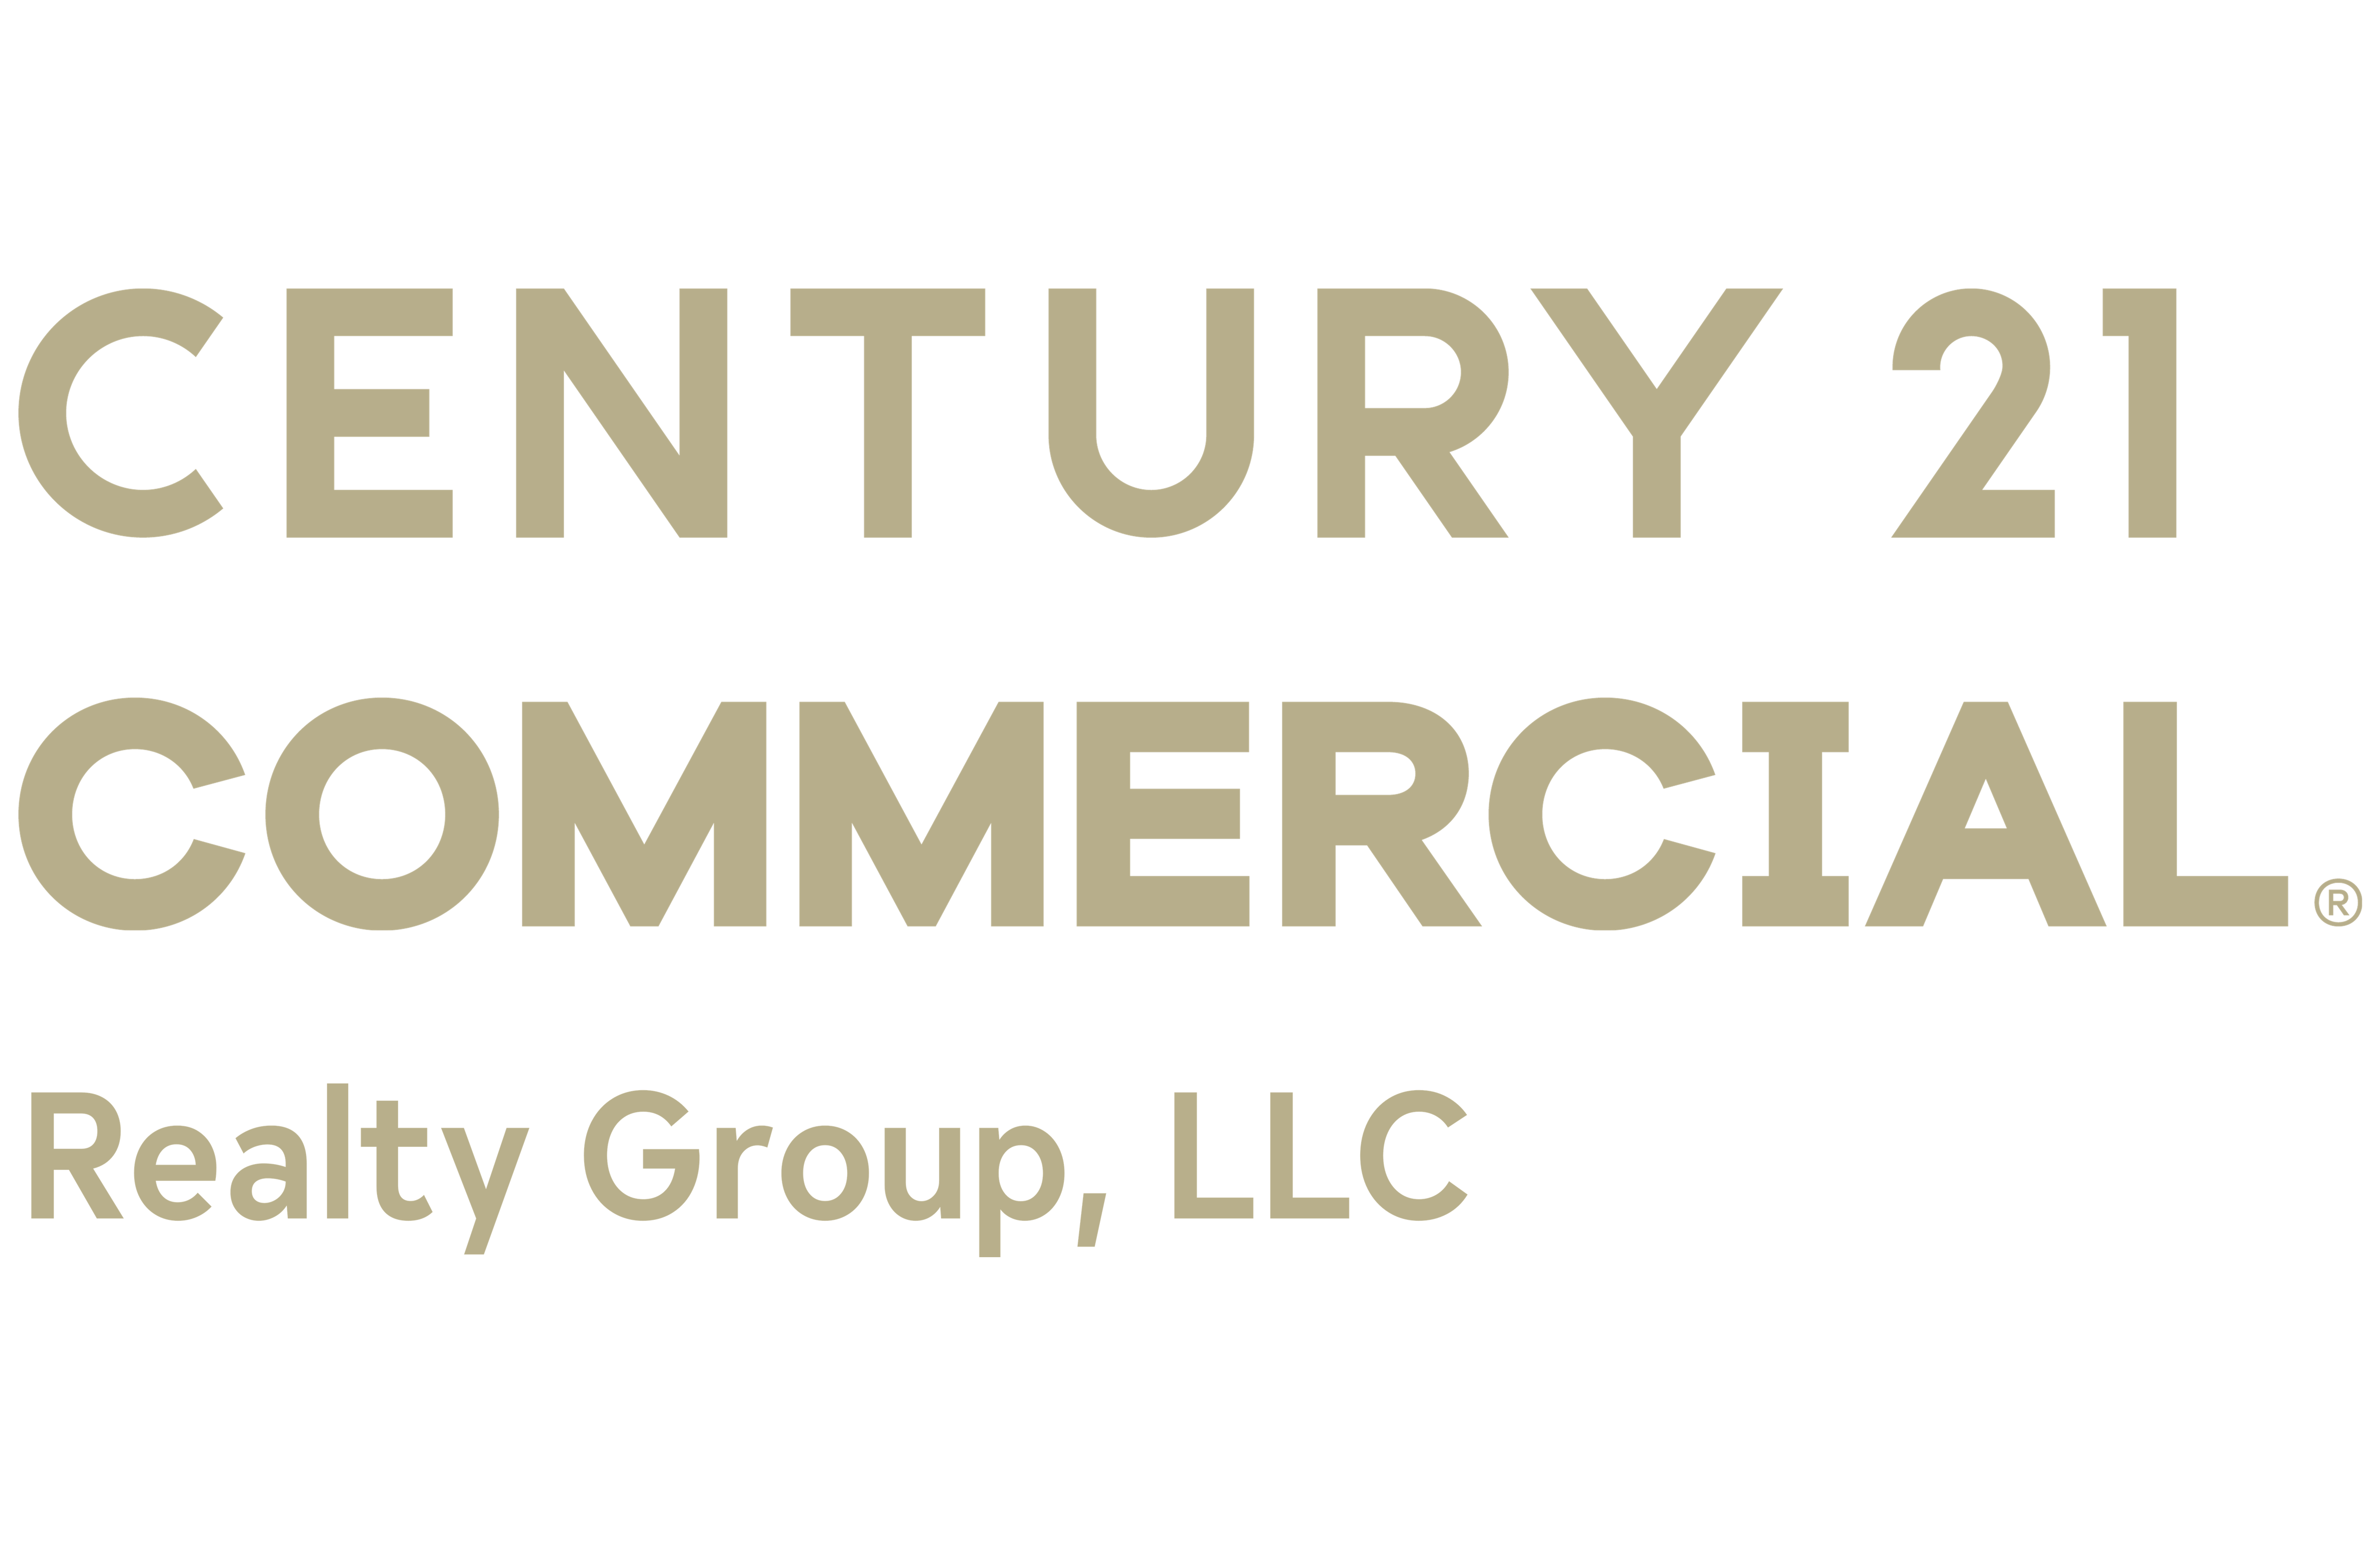 Rick Potter of CENTURY 21 Realty Group, LLC logo